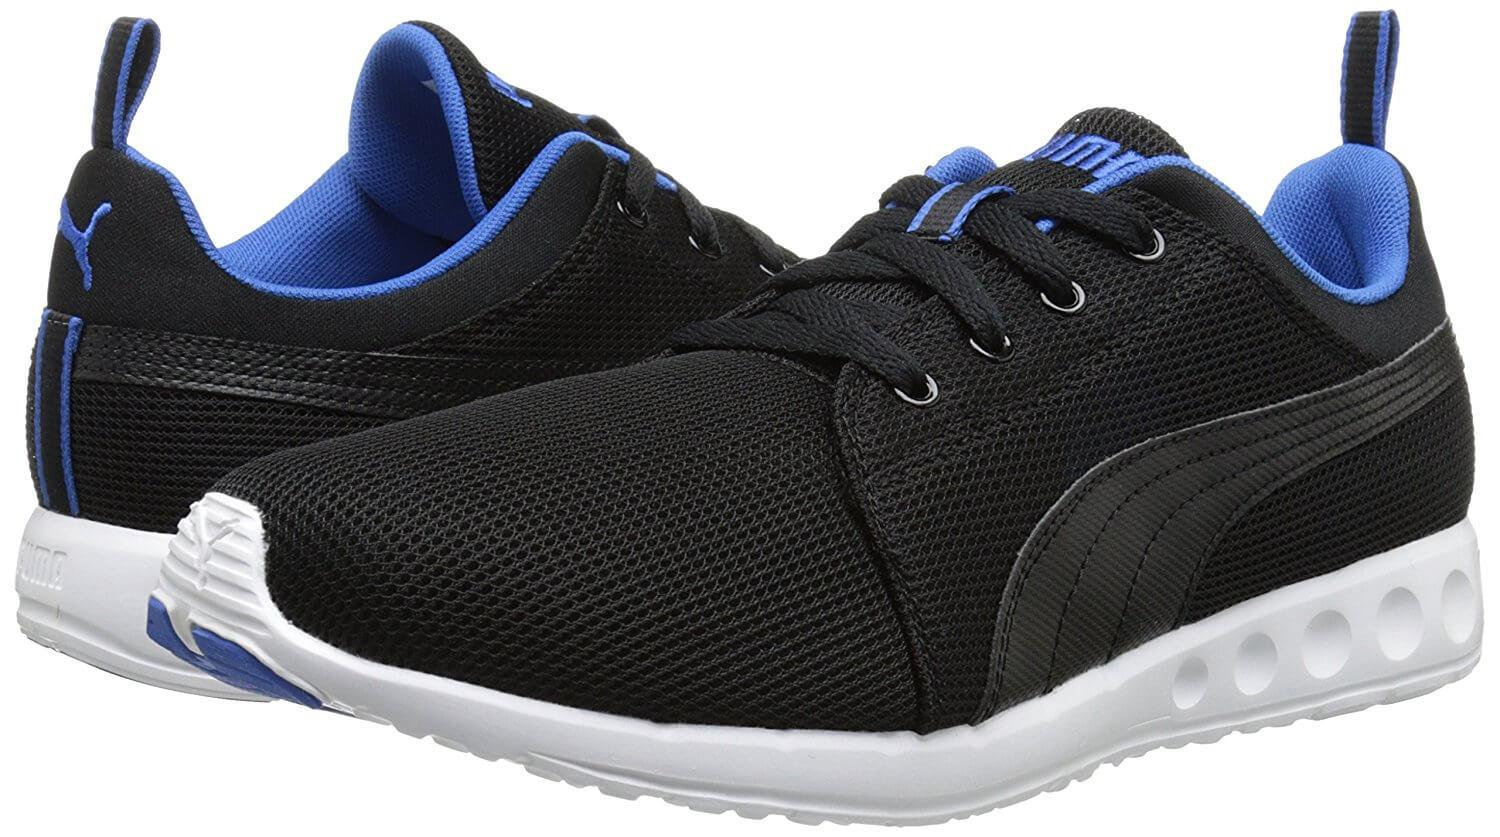 ... Puma Carson Runner is an affordable daily training shoe 075a36520